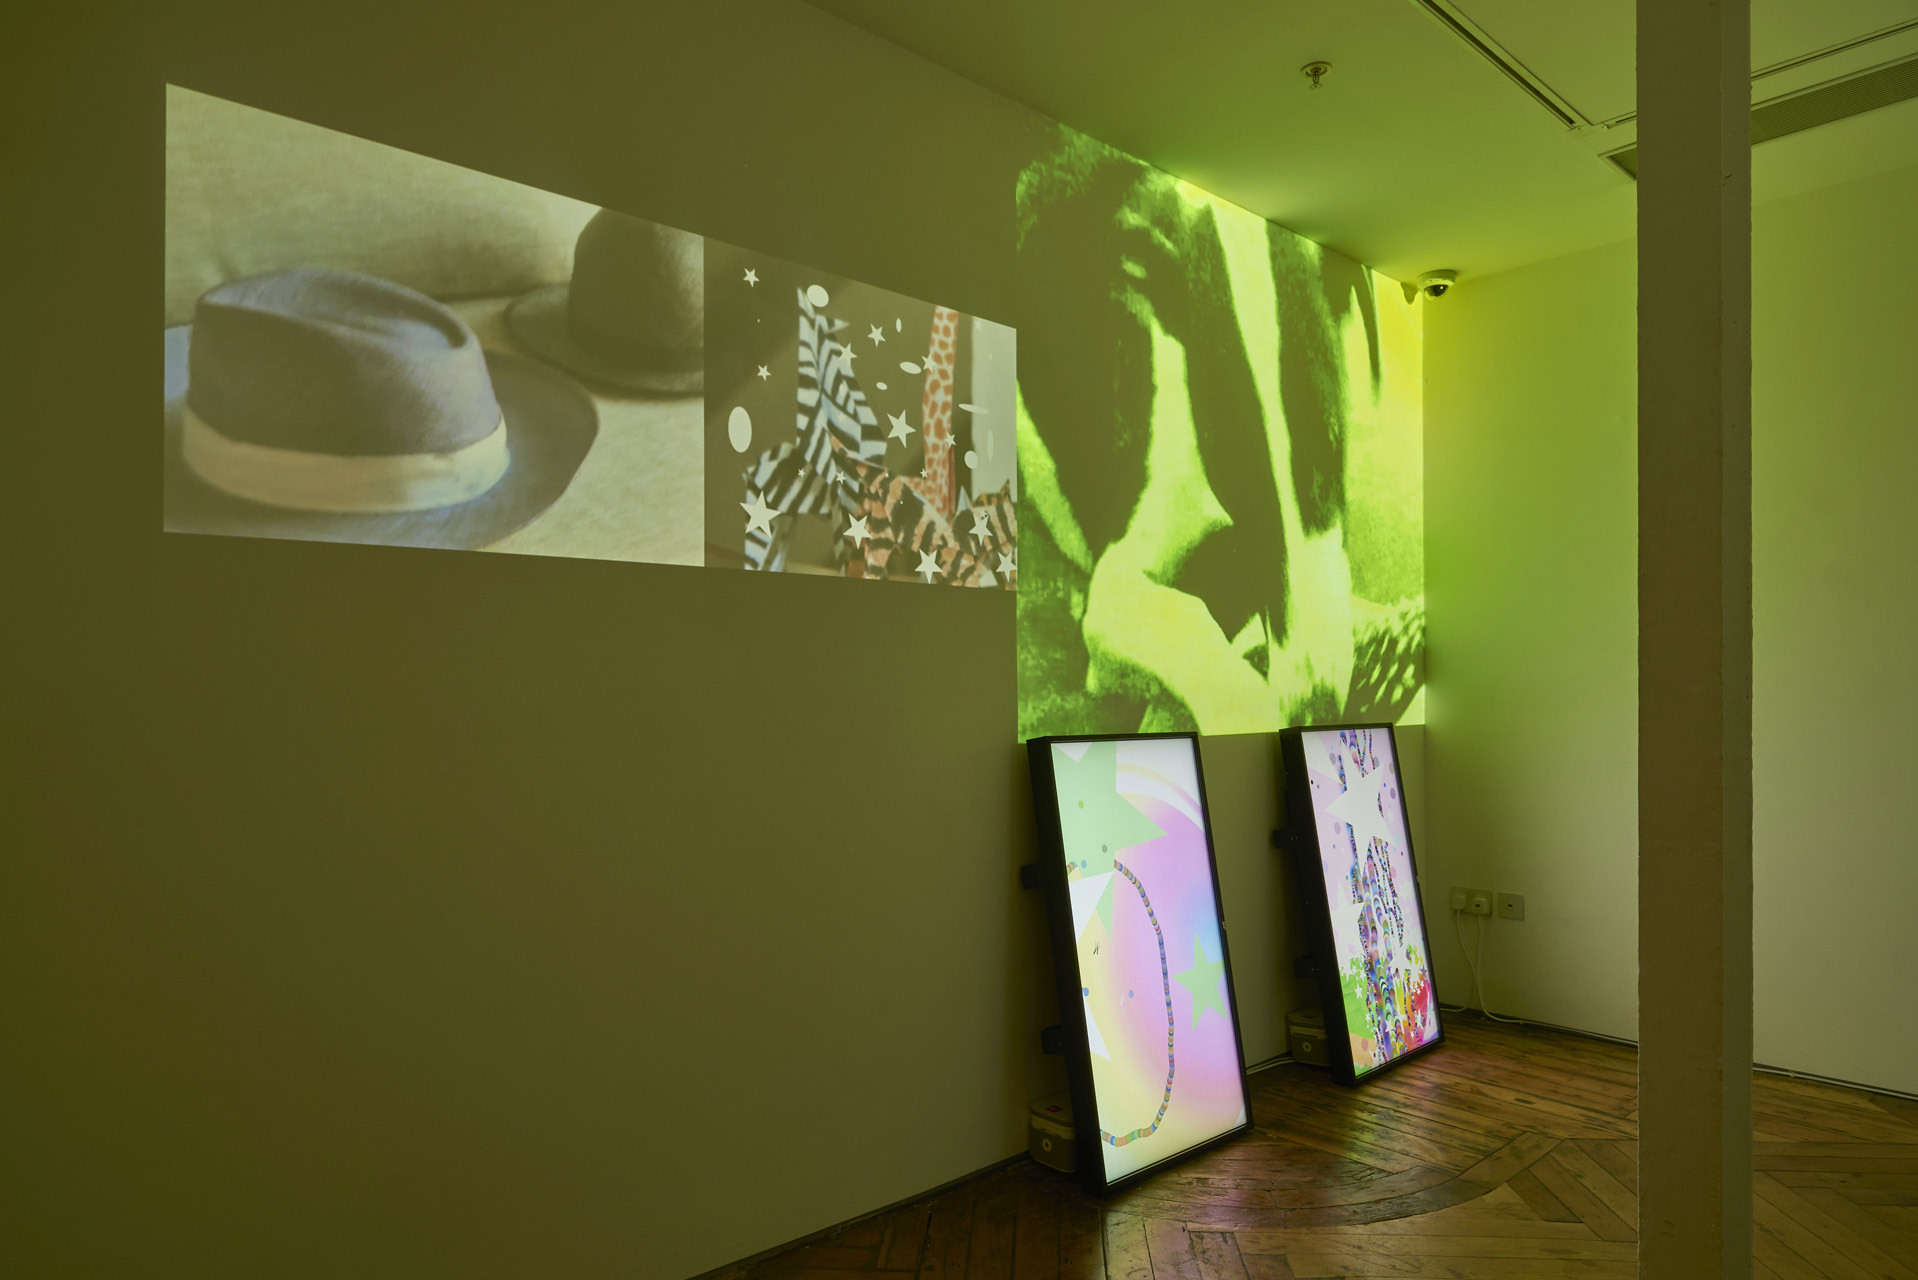 "<div class=""artwork_caption""><p>Installation view, 2015</p></div>"